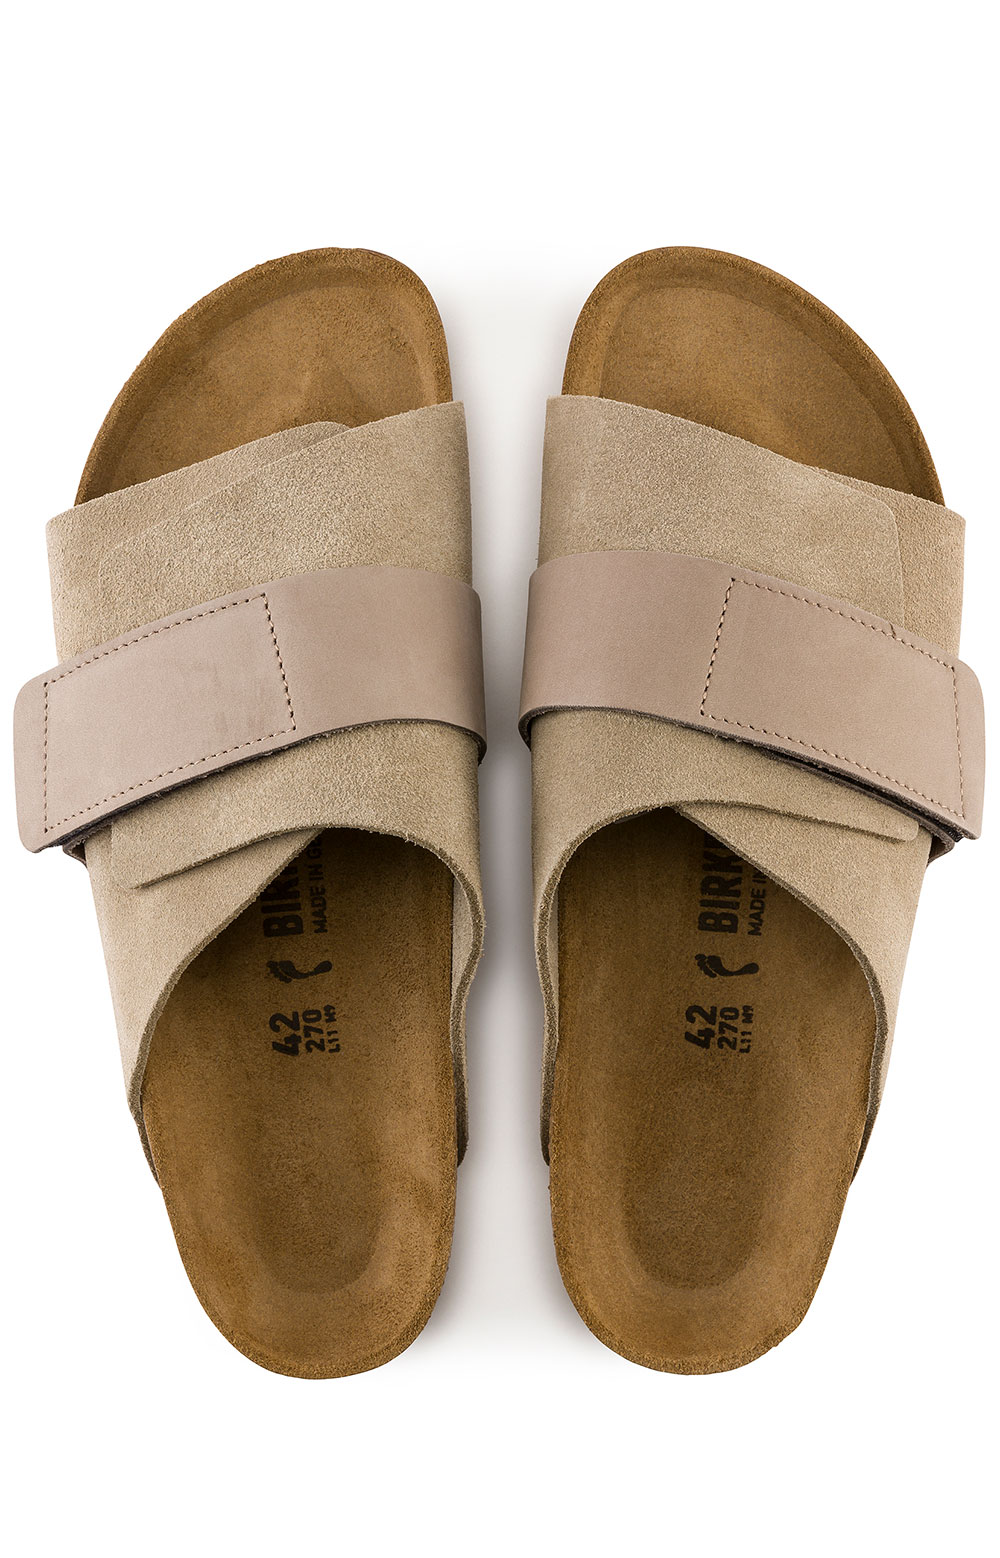 (1015573) Kyoto Sandals - Taupe 6